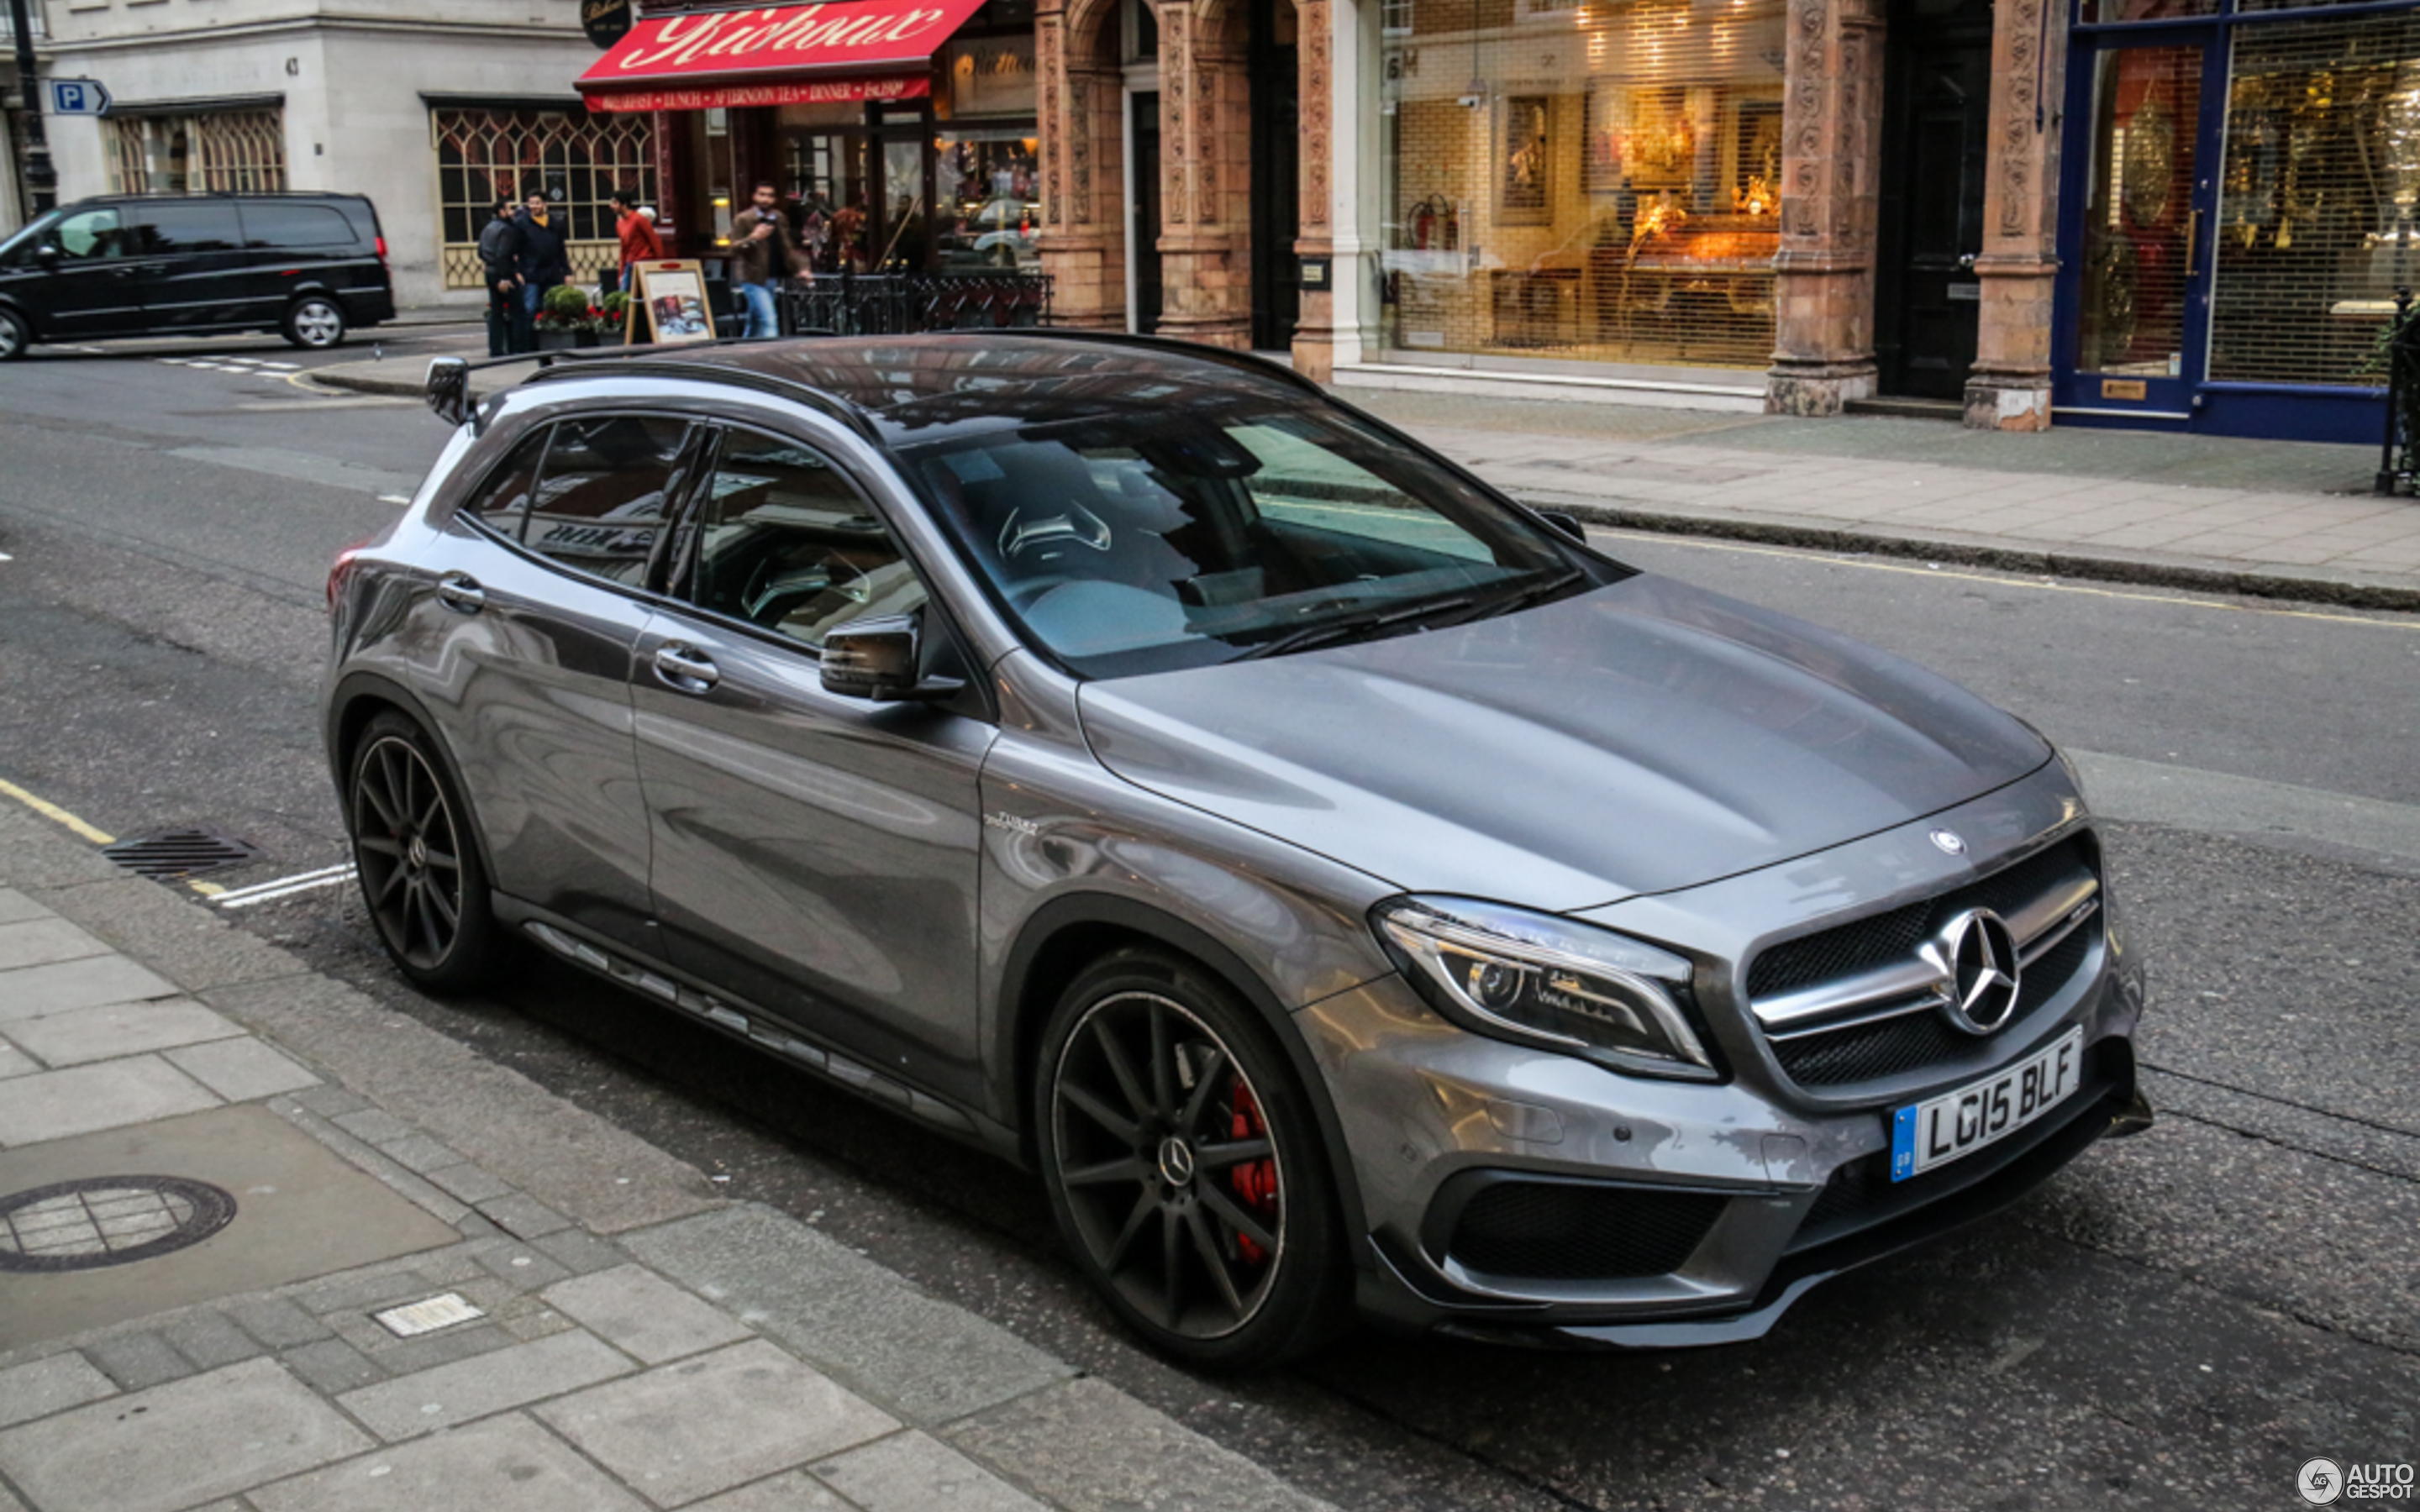 2017 Amg Gla 45 Mercedes Benz >> Mercedes-Benz GLA 45 AMG X156 - 25 March 2015 - Autogespot